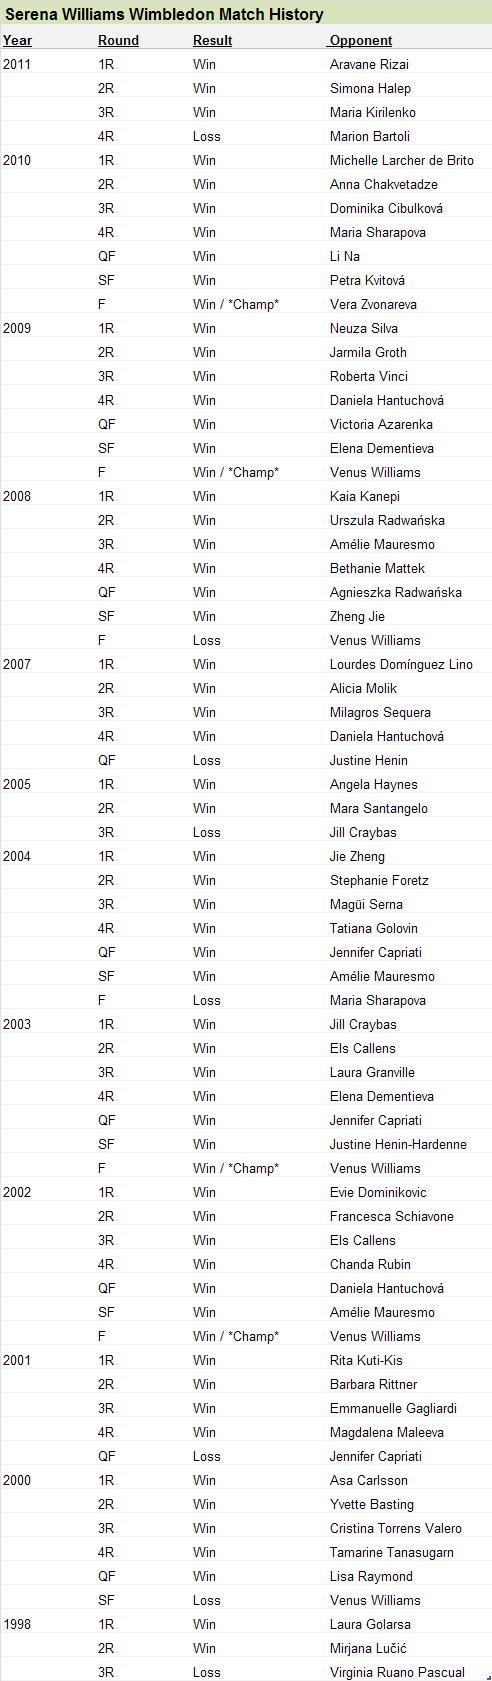 Serena Williams at Wimbledon Results History